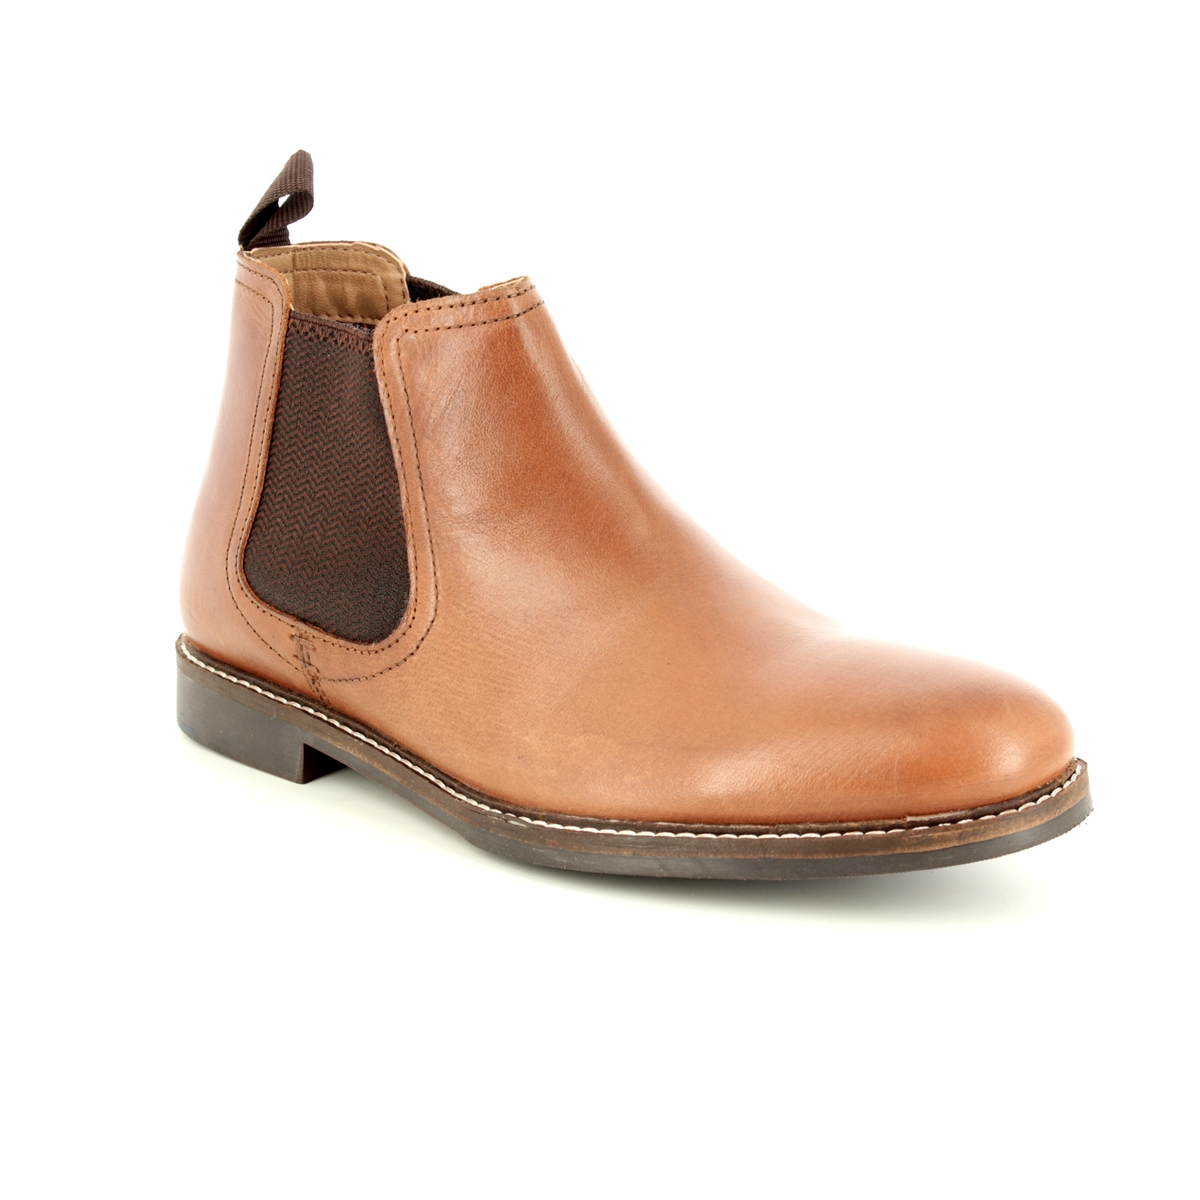 fbb60364cc Red Tape Boots - Tan - 7201/11 MORLEY